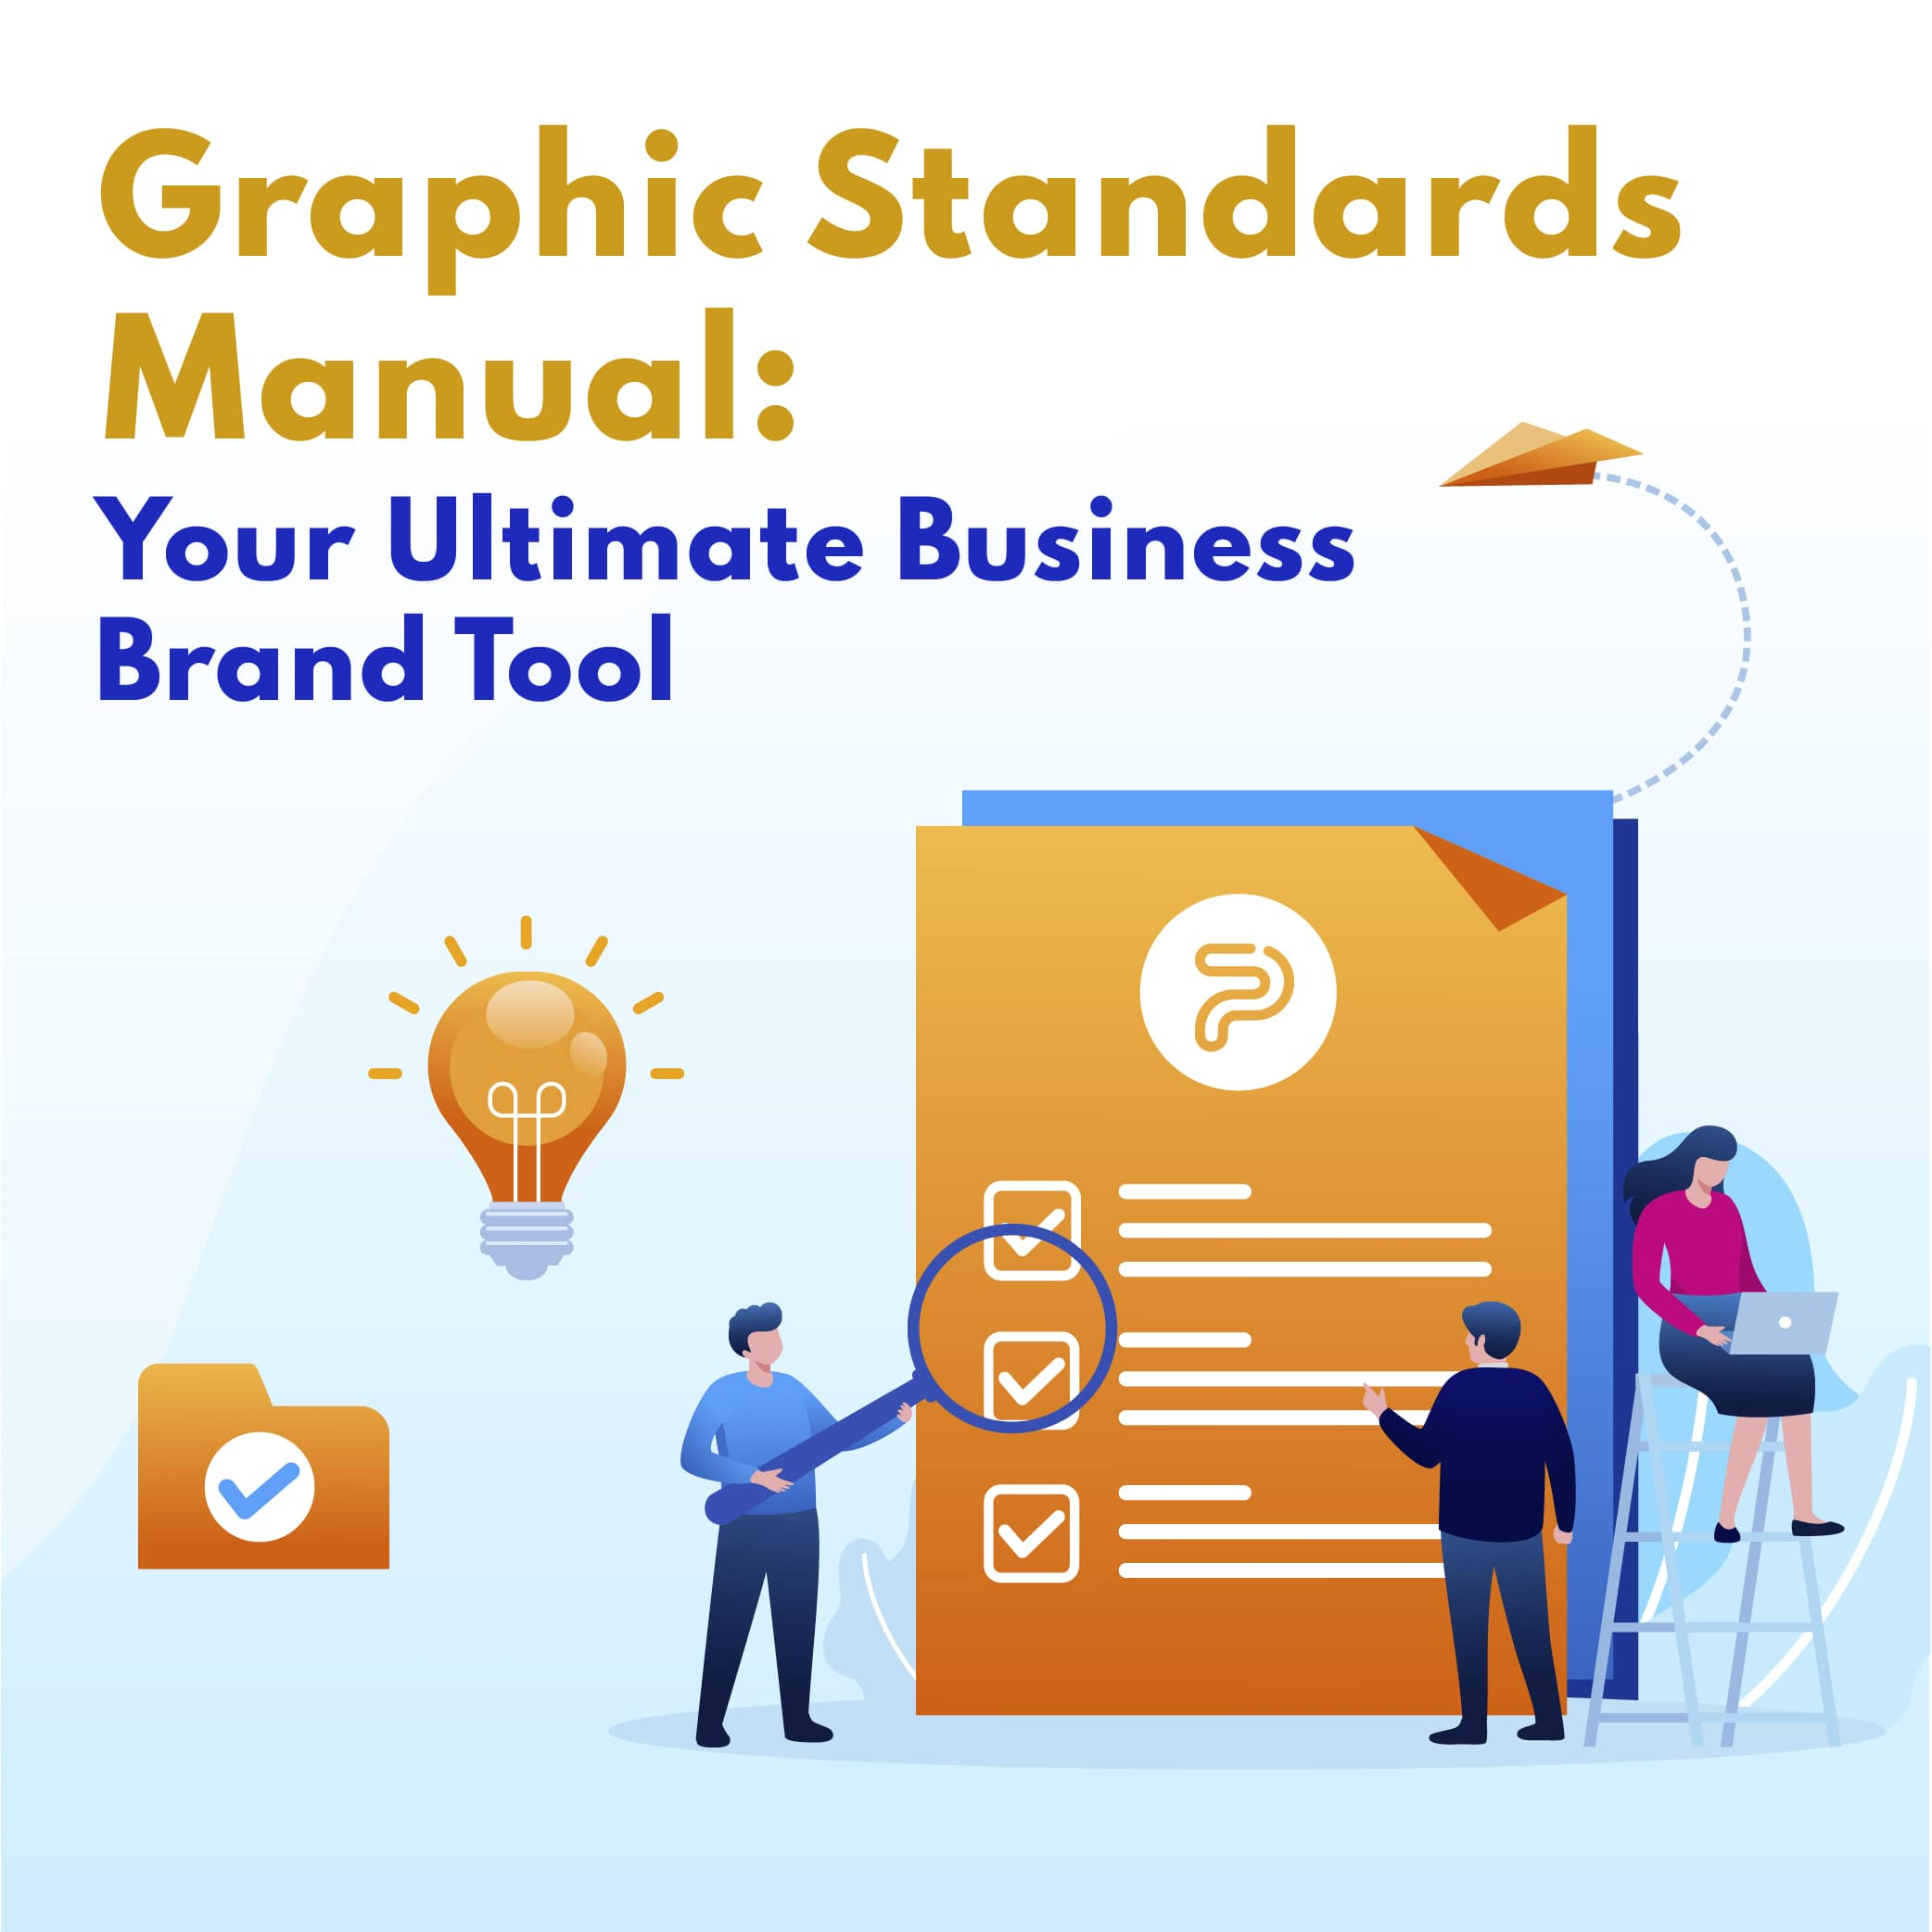 52379Graphic Standards Manual: Your Ultimate Business Brand Tool